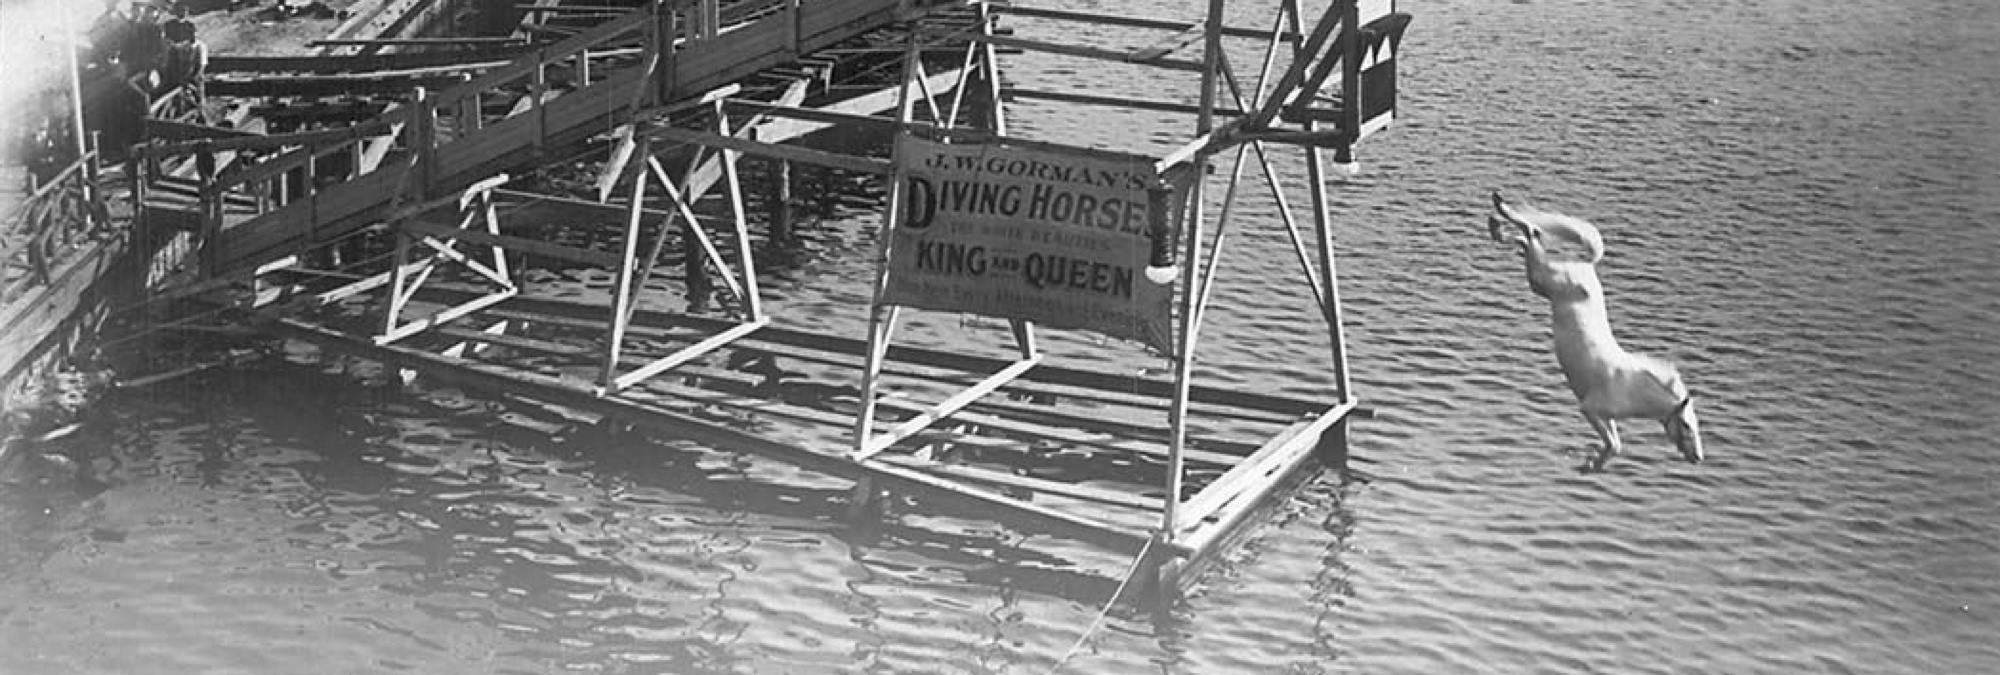 Featured Horse Diving